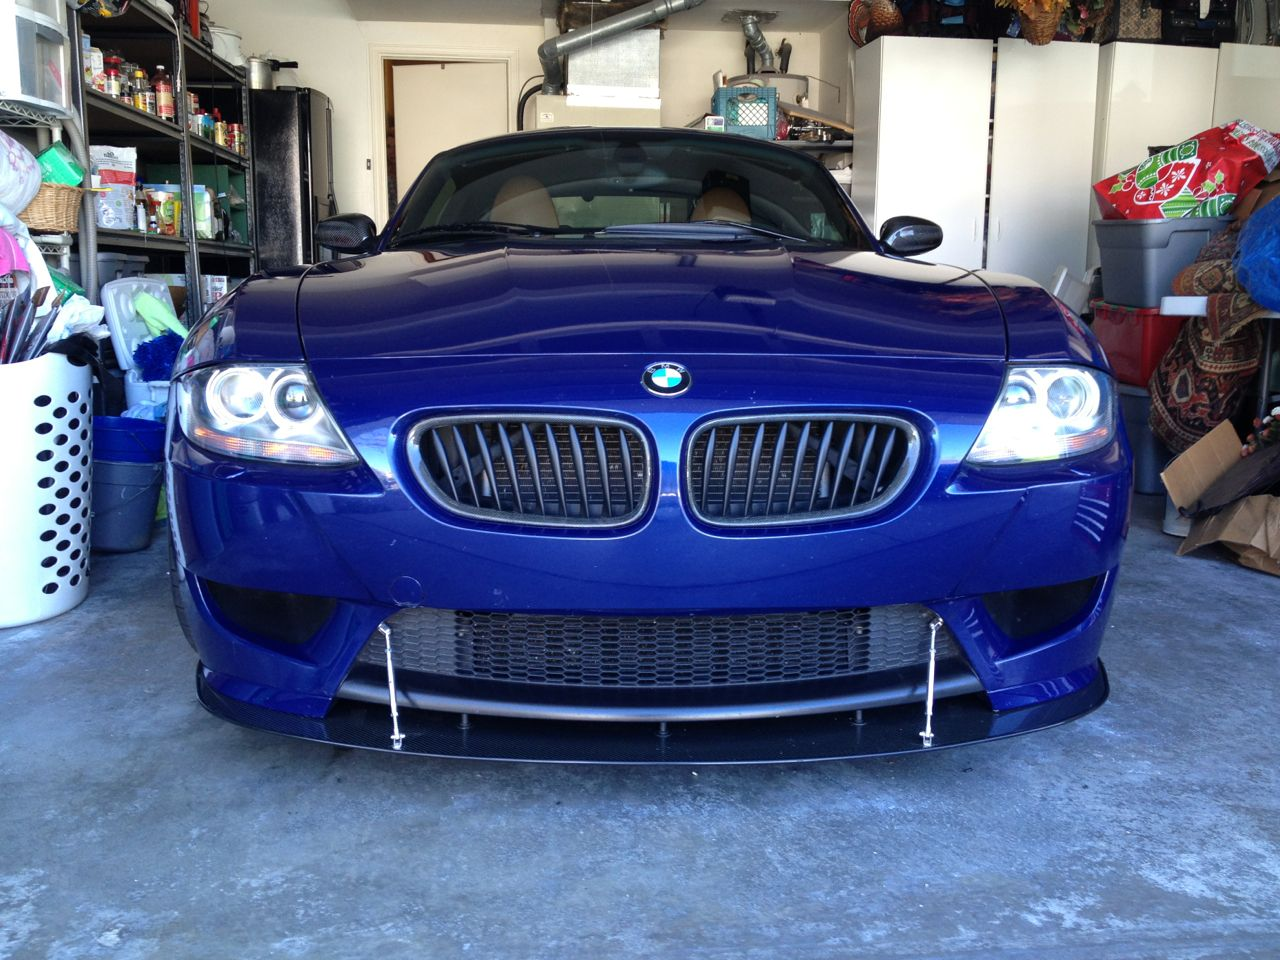 Need Front Splitter For Z4 Sources